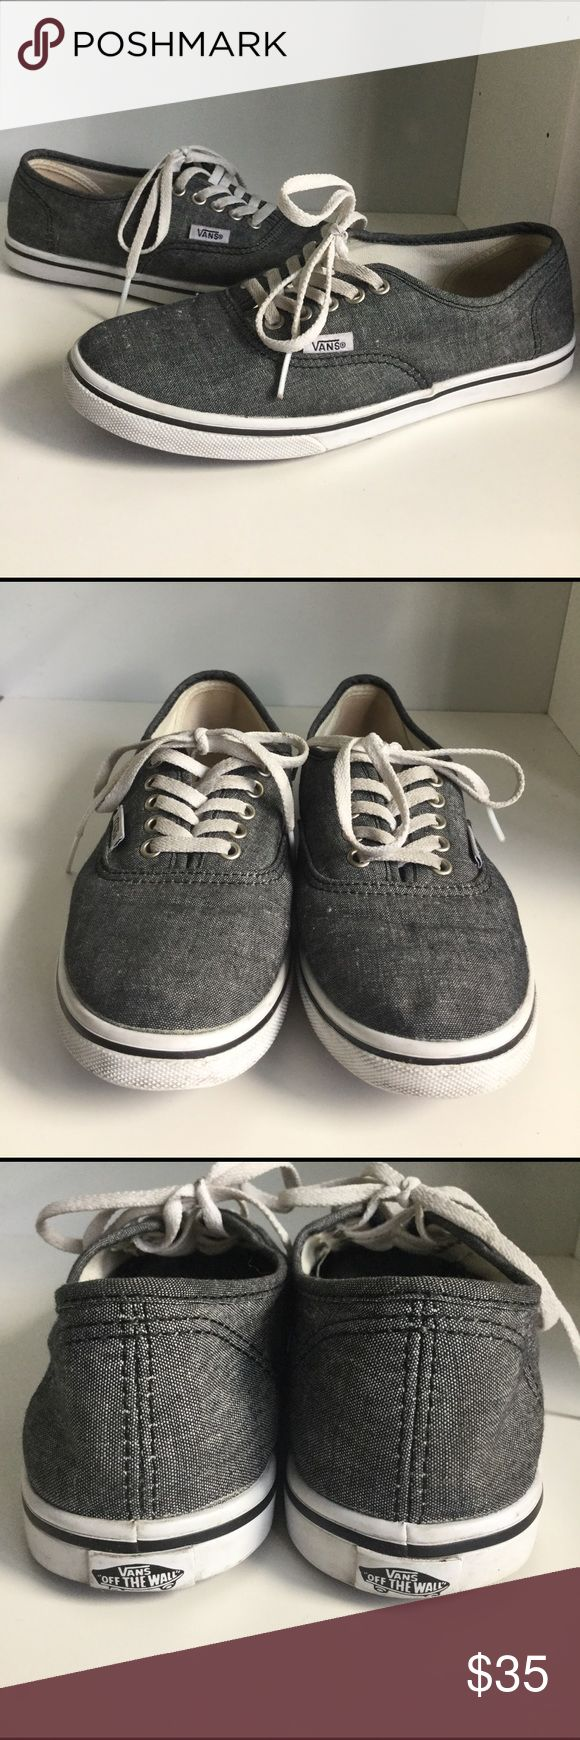 Vans Authentic Lo Pro Canvas Sneakers Worn several times and still in great condition. Minor stains. Men size4.5, women 6.  Canvas heathered gray Vans Shoes Sneakers